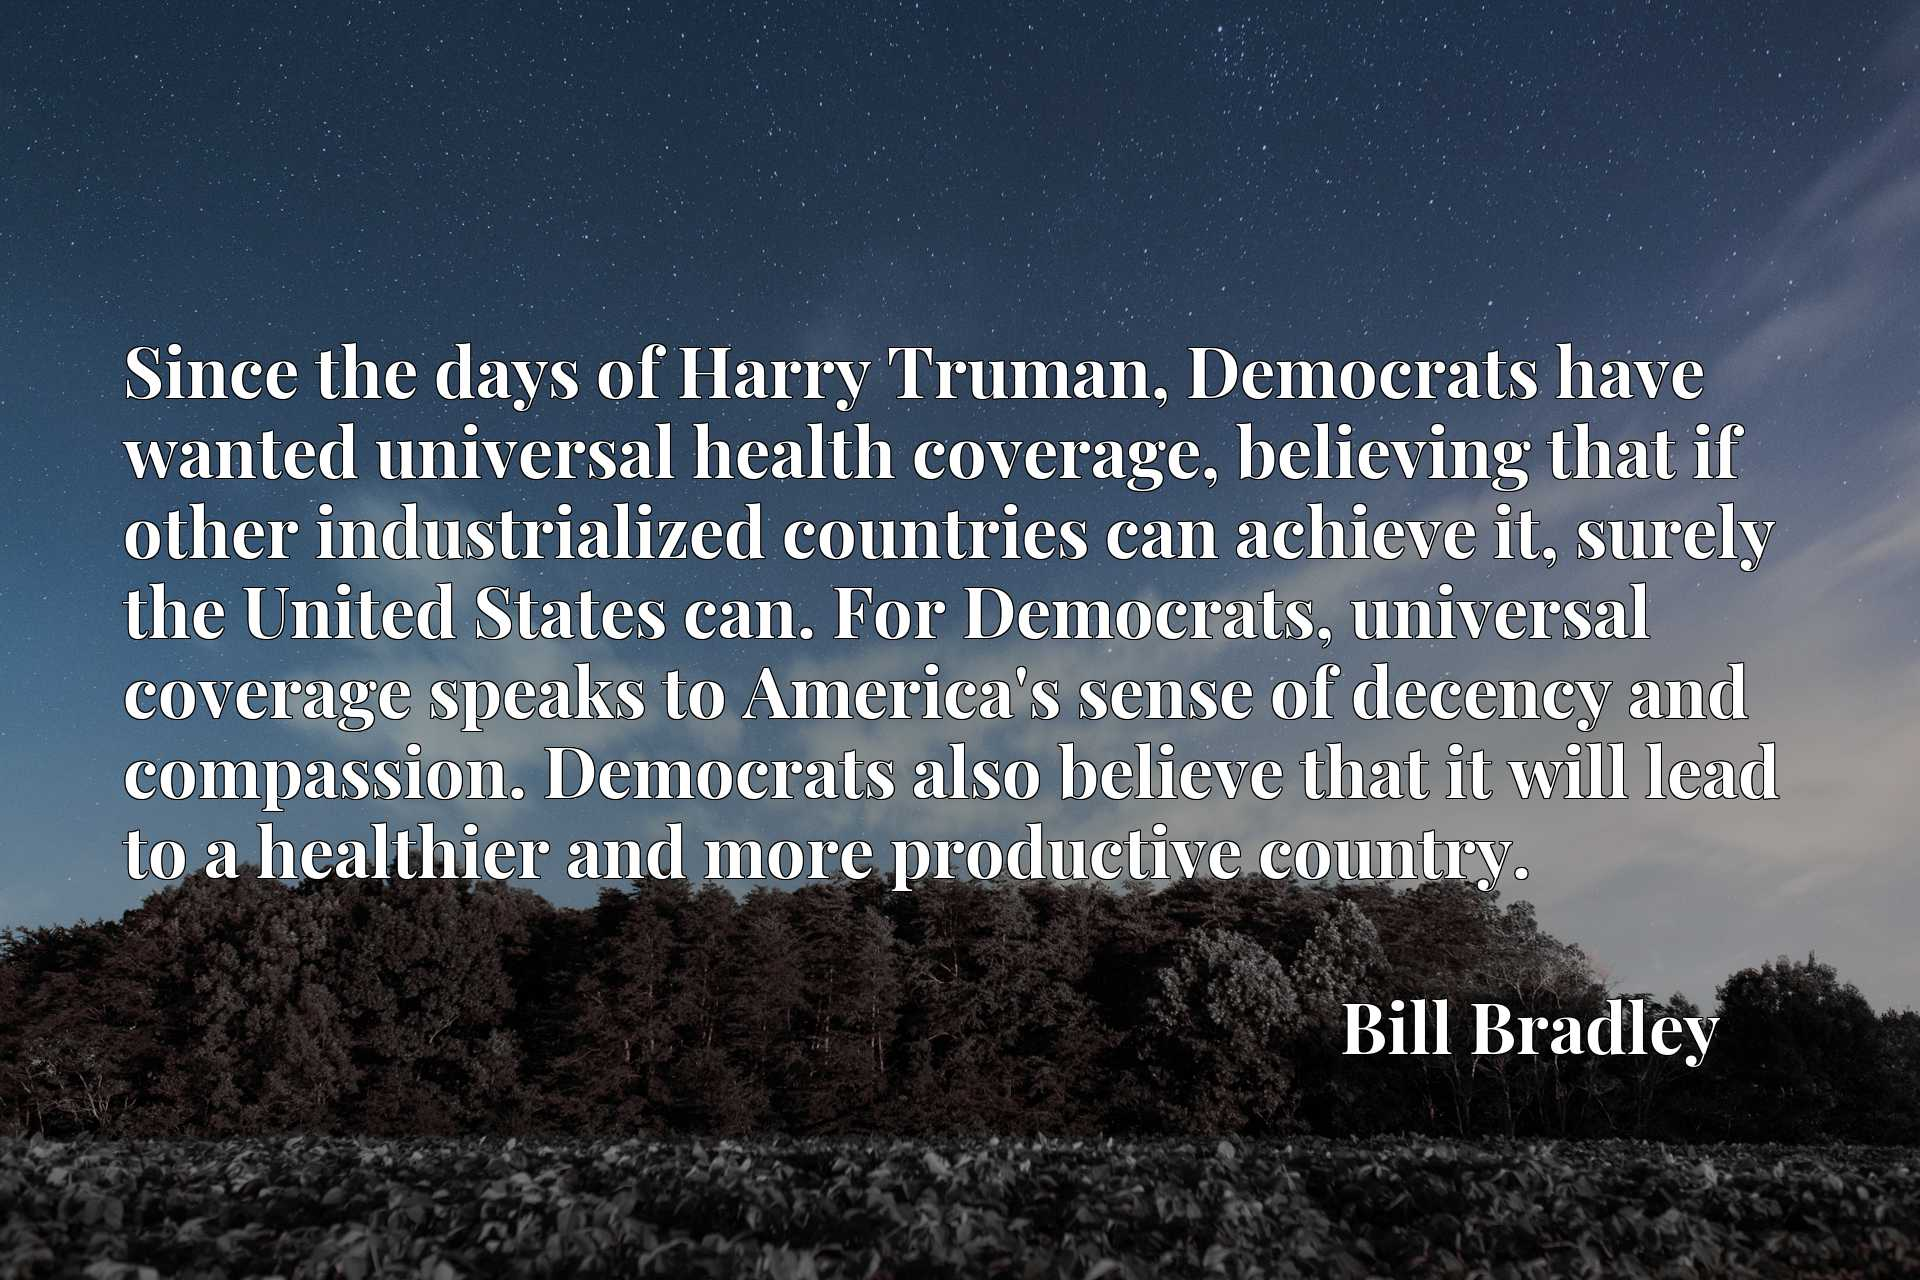 Since the days of Harry Truman, Democrats have wanted universal health coverage, believing that if other industrialized countries can achieve it, surely the United States can. For Democrats, universal coverage speaks to America's sense of decency and compassion. Democrats also believe that it will lead to a healthier and more productive country.